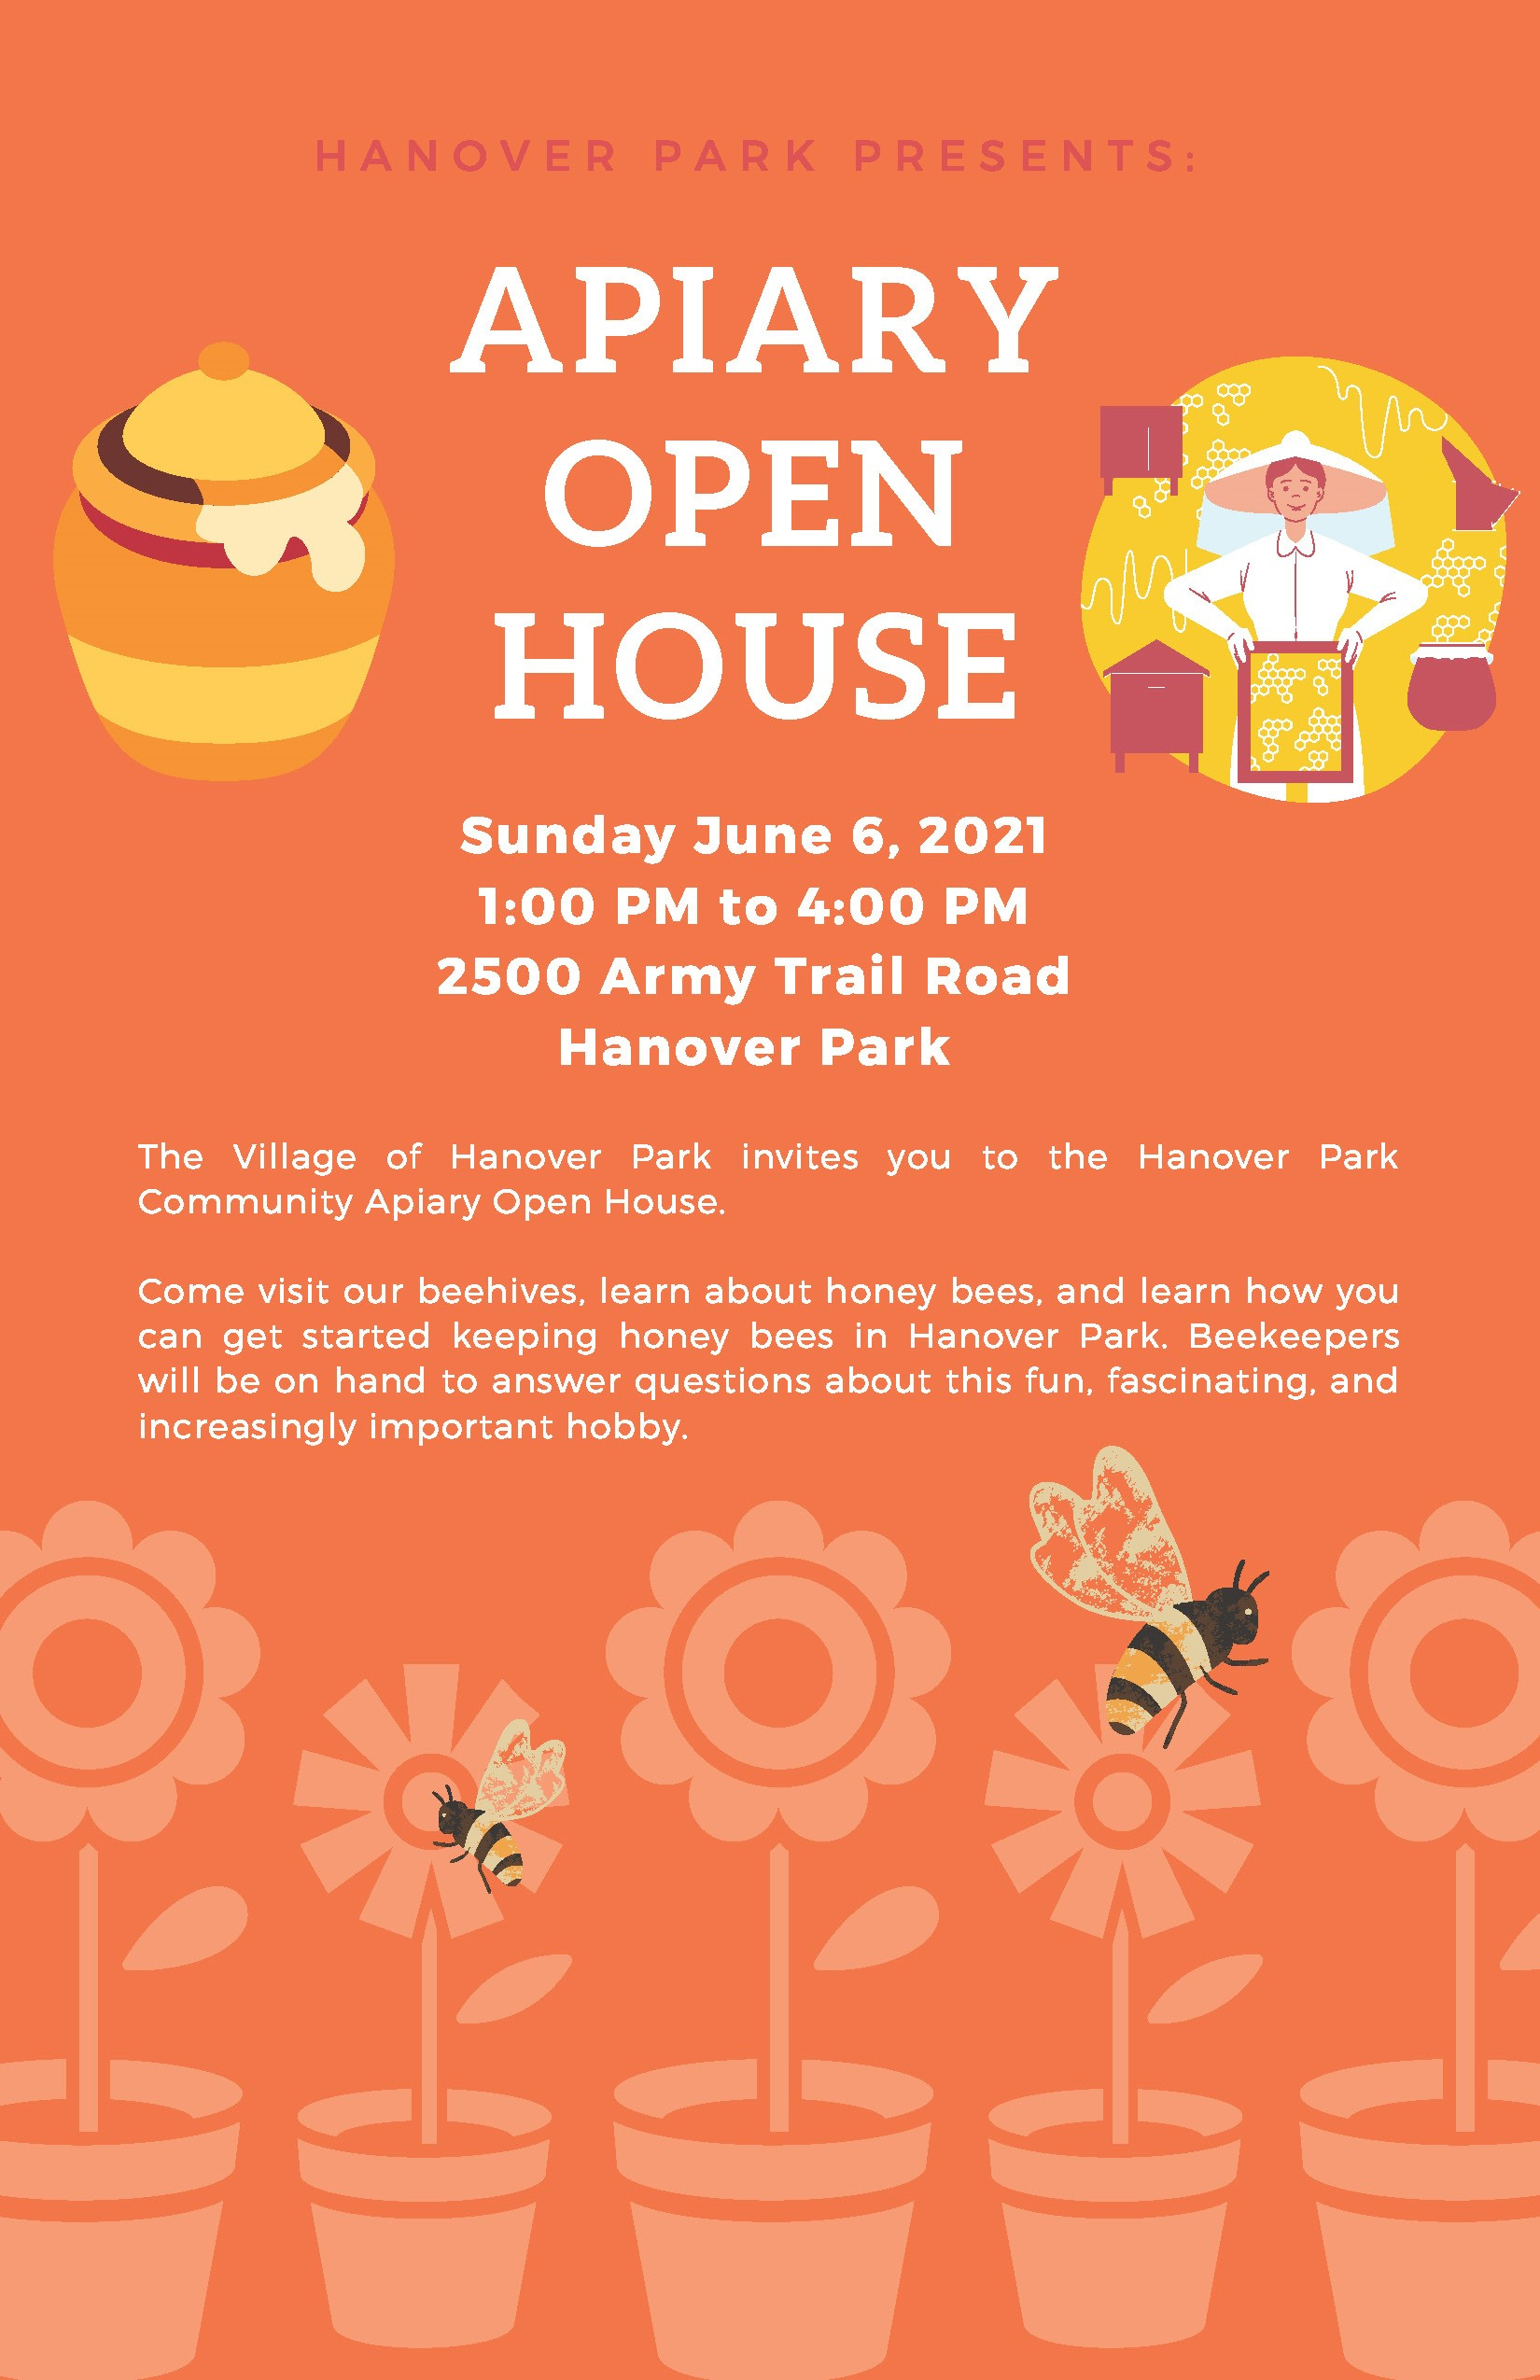 APIARY OPEN HOUSE Flyer